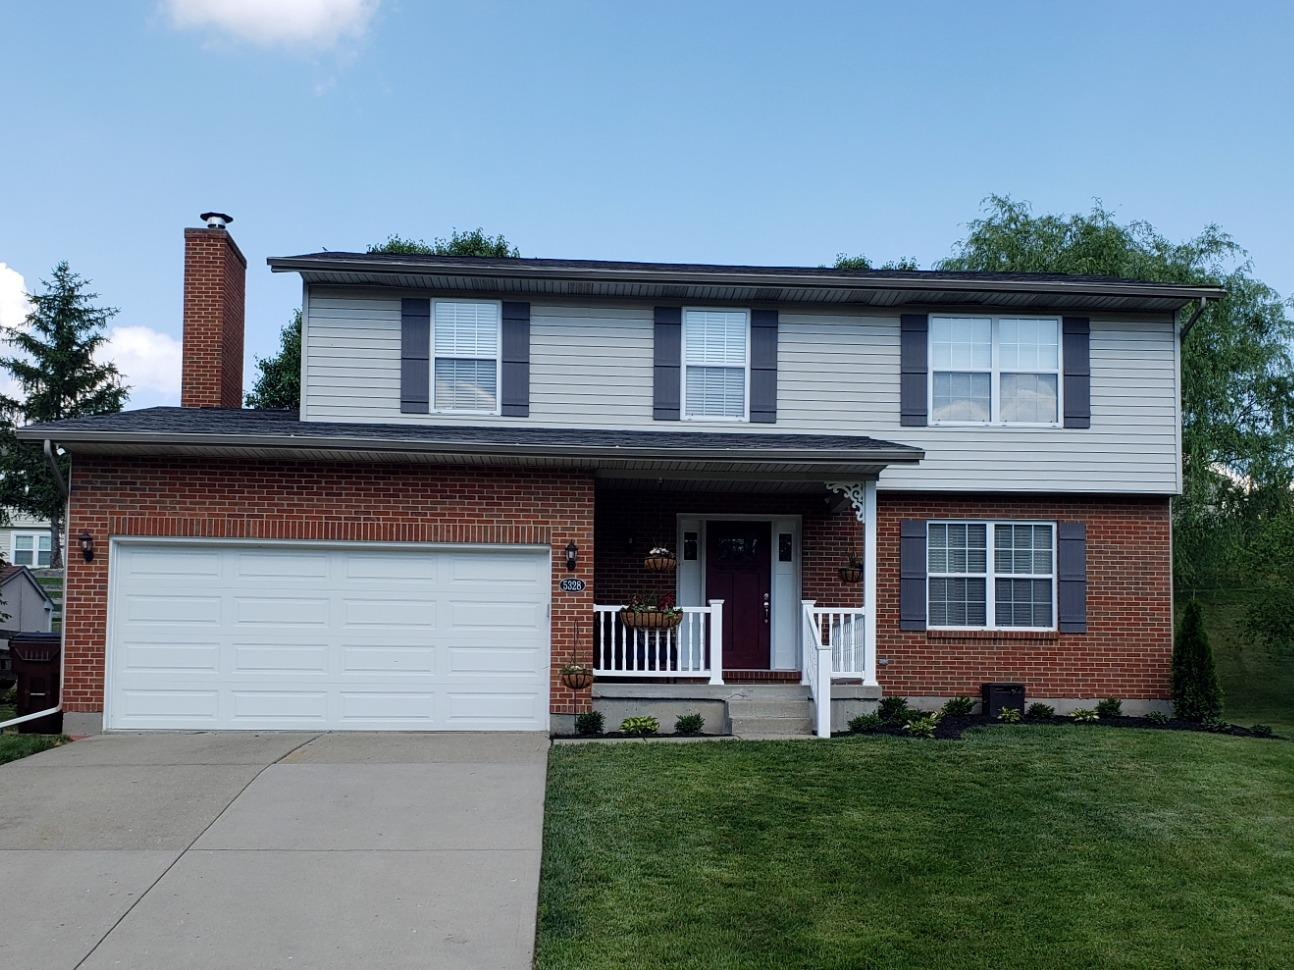 5328 Orchard Creek Ct Monfort Hts., OH